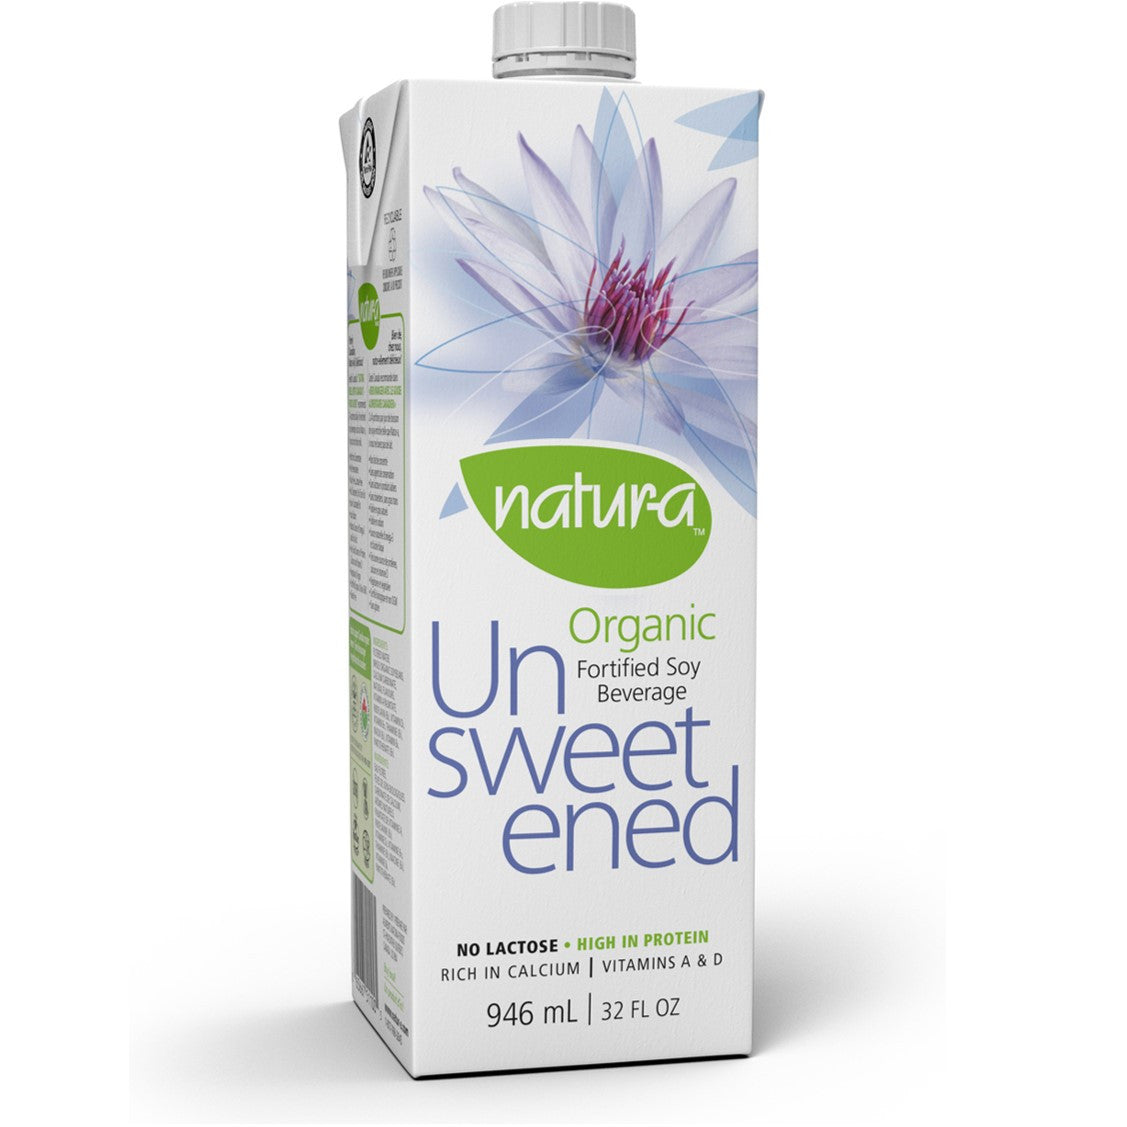 Natur-a Enriched Soy Beverage - Unsweetened (Organic), 946 ml.-NaturesWisdom